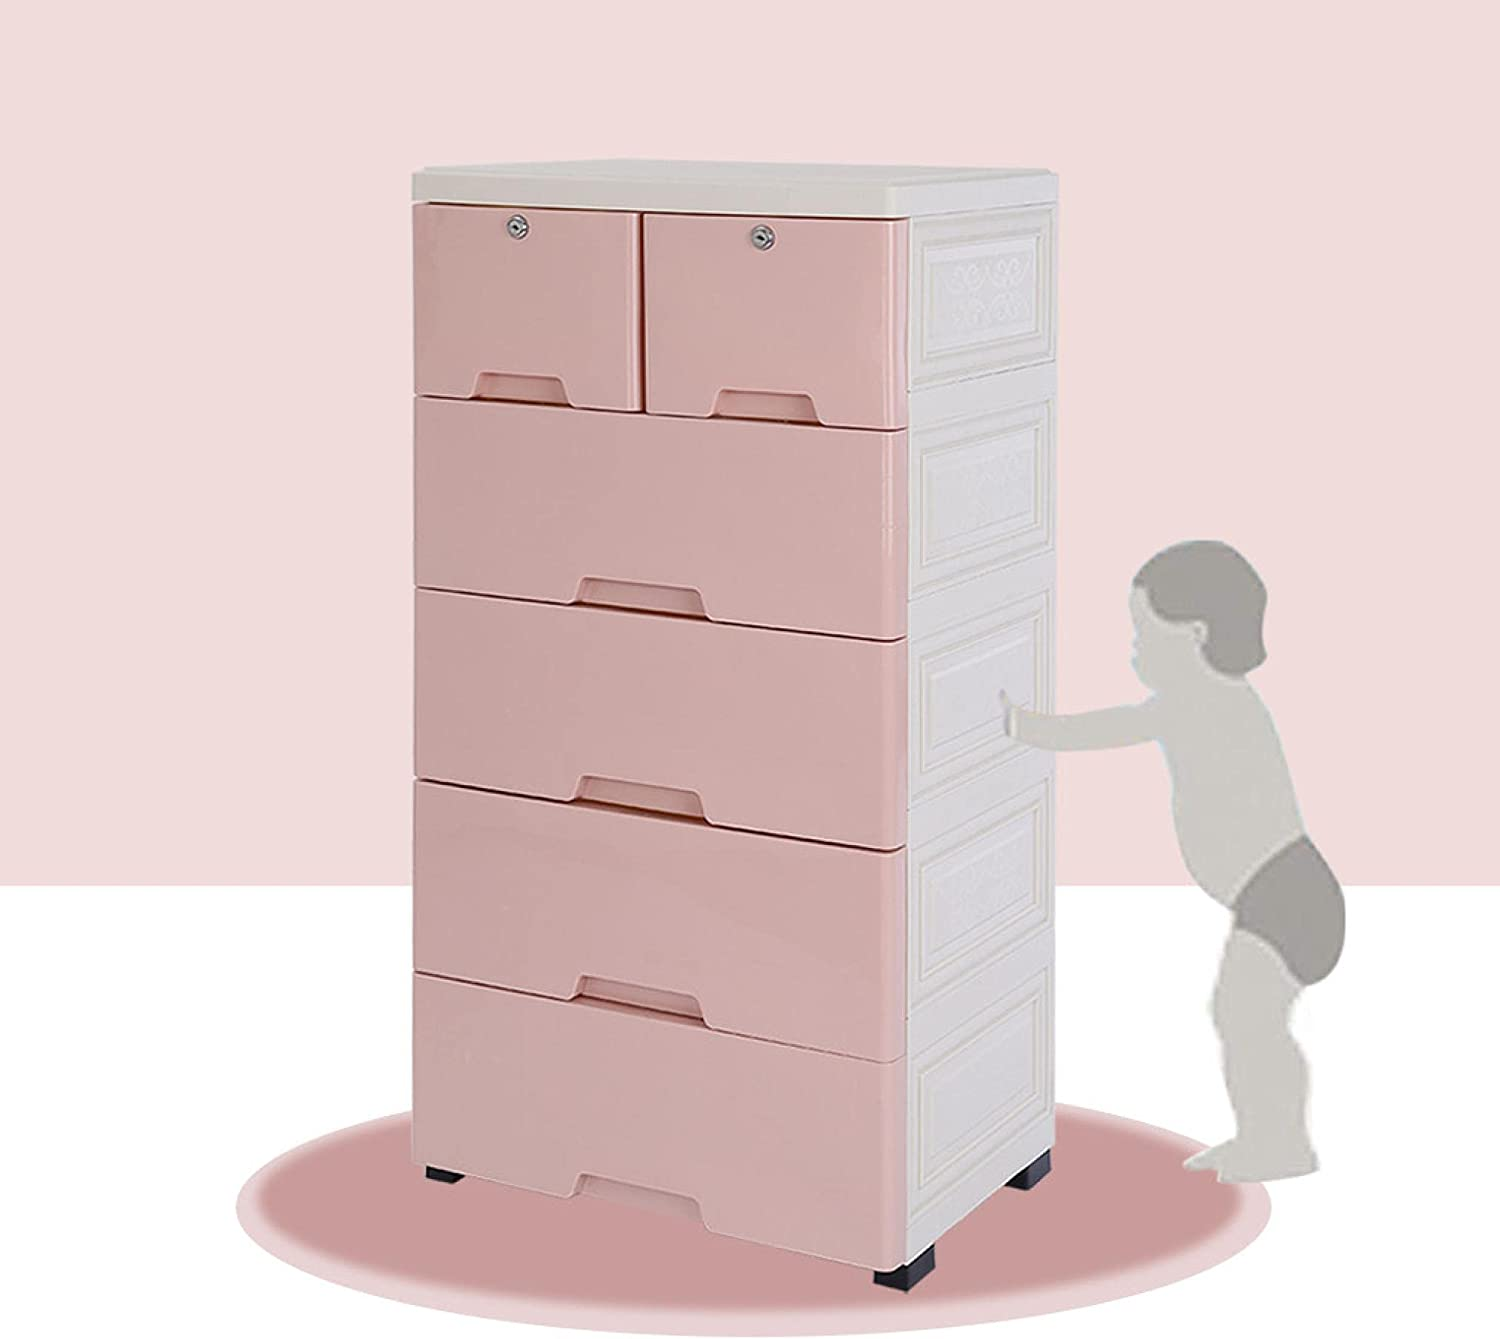 FITOOM 2021 autumn and winter new Plastic Drawers Dresser Storage Cabinet specialty shop Cl with 6